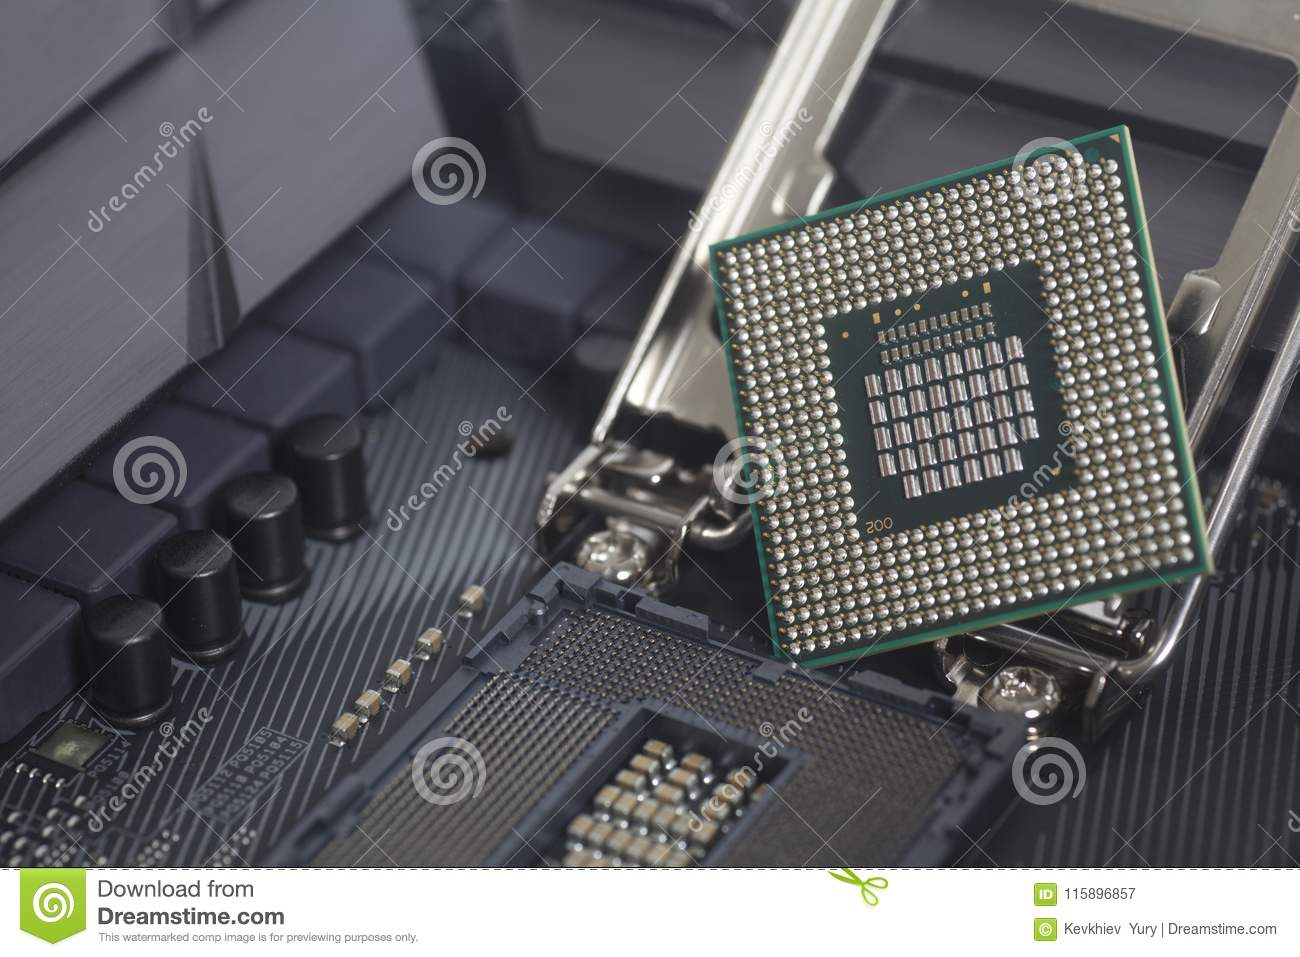 Intel LGA 1151 cpu socket on motherboard Computer PC with cpu processor